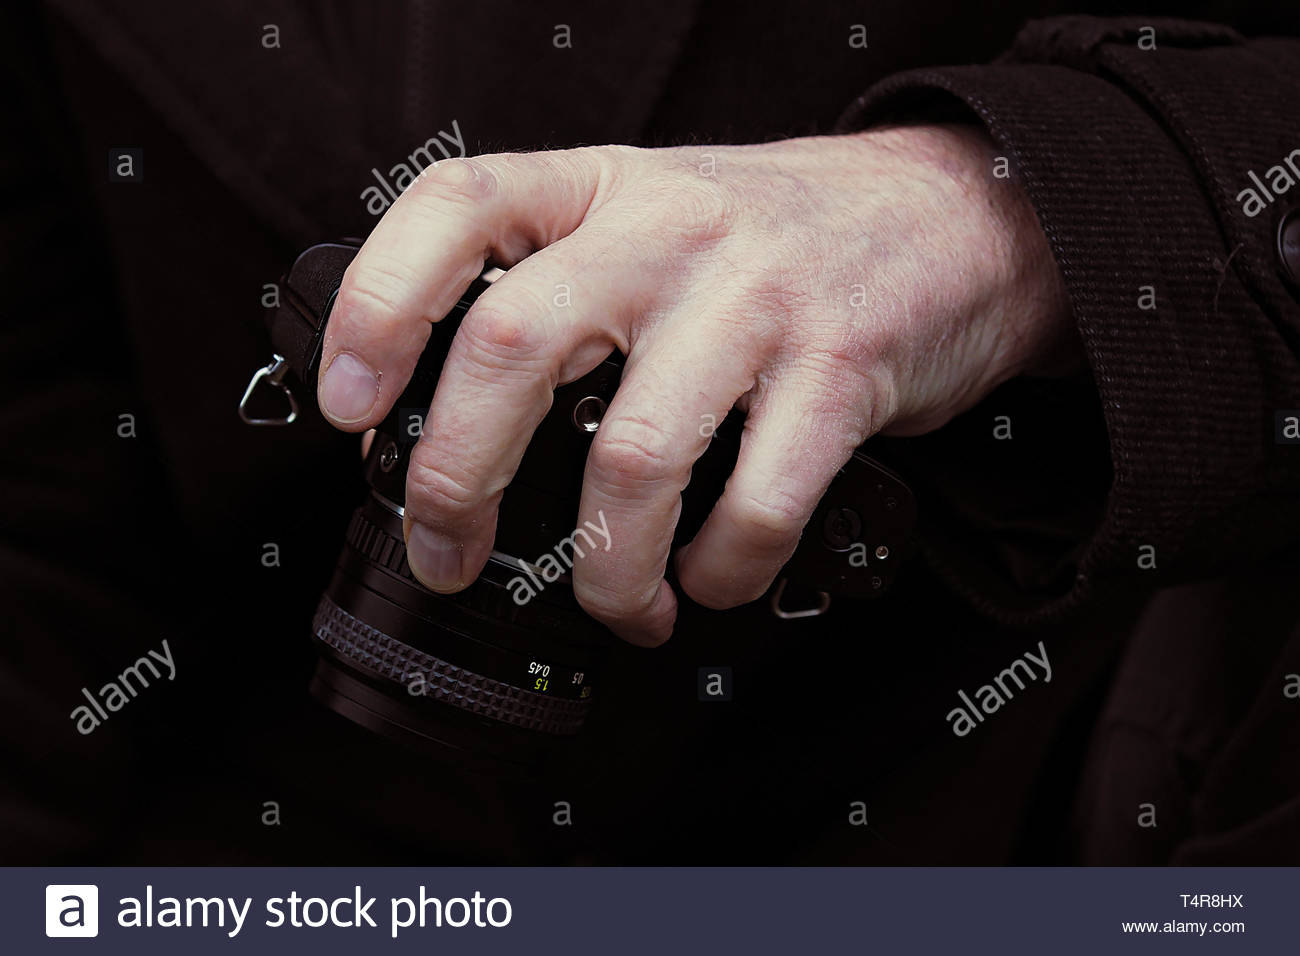 grasping lowered camera - Stock Image